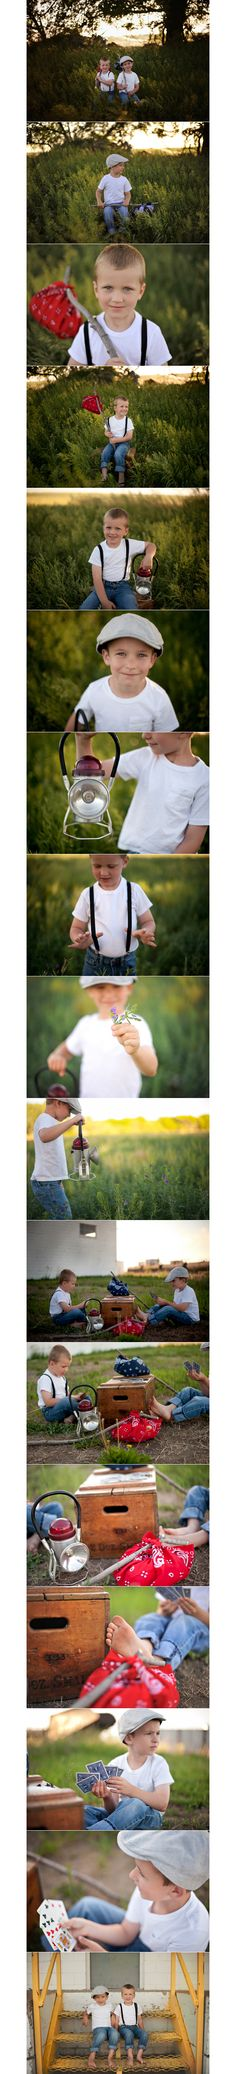 Children | Family Photography | Portraits | Photo Session Inspiration | Pose Idea | Poses | Child | Brothers | | Sibling | Siblings